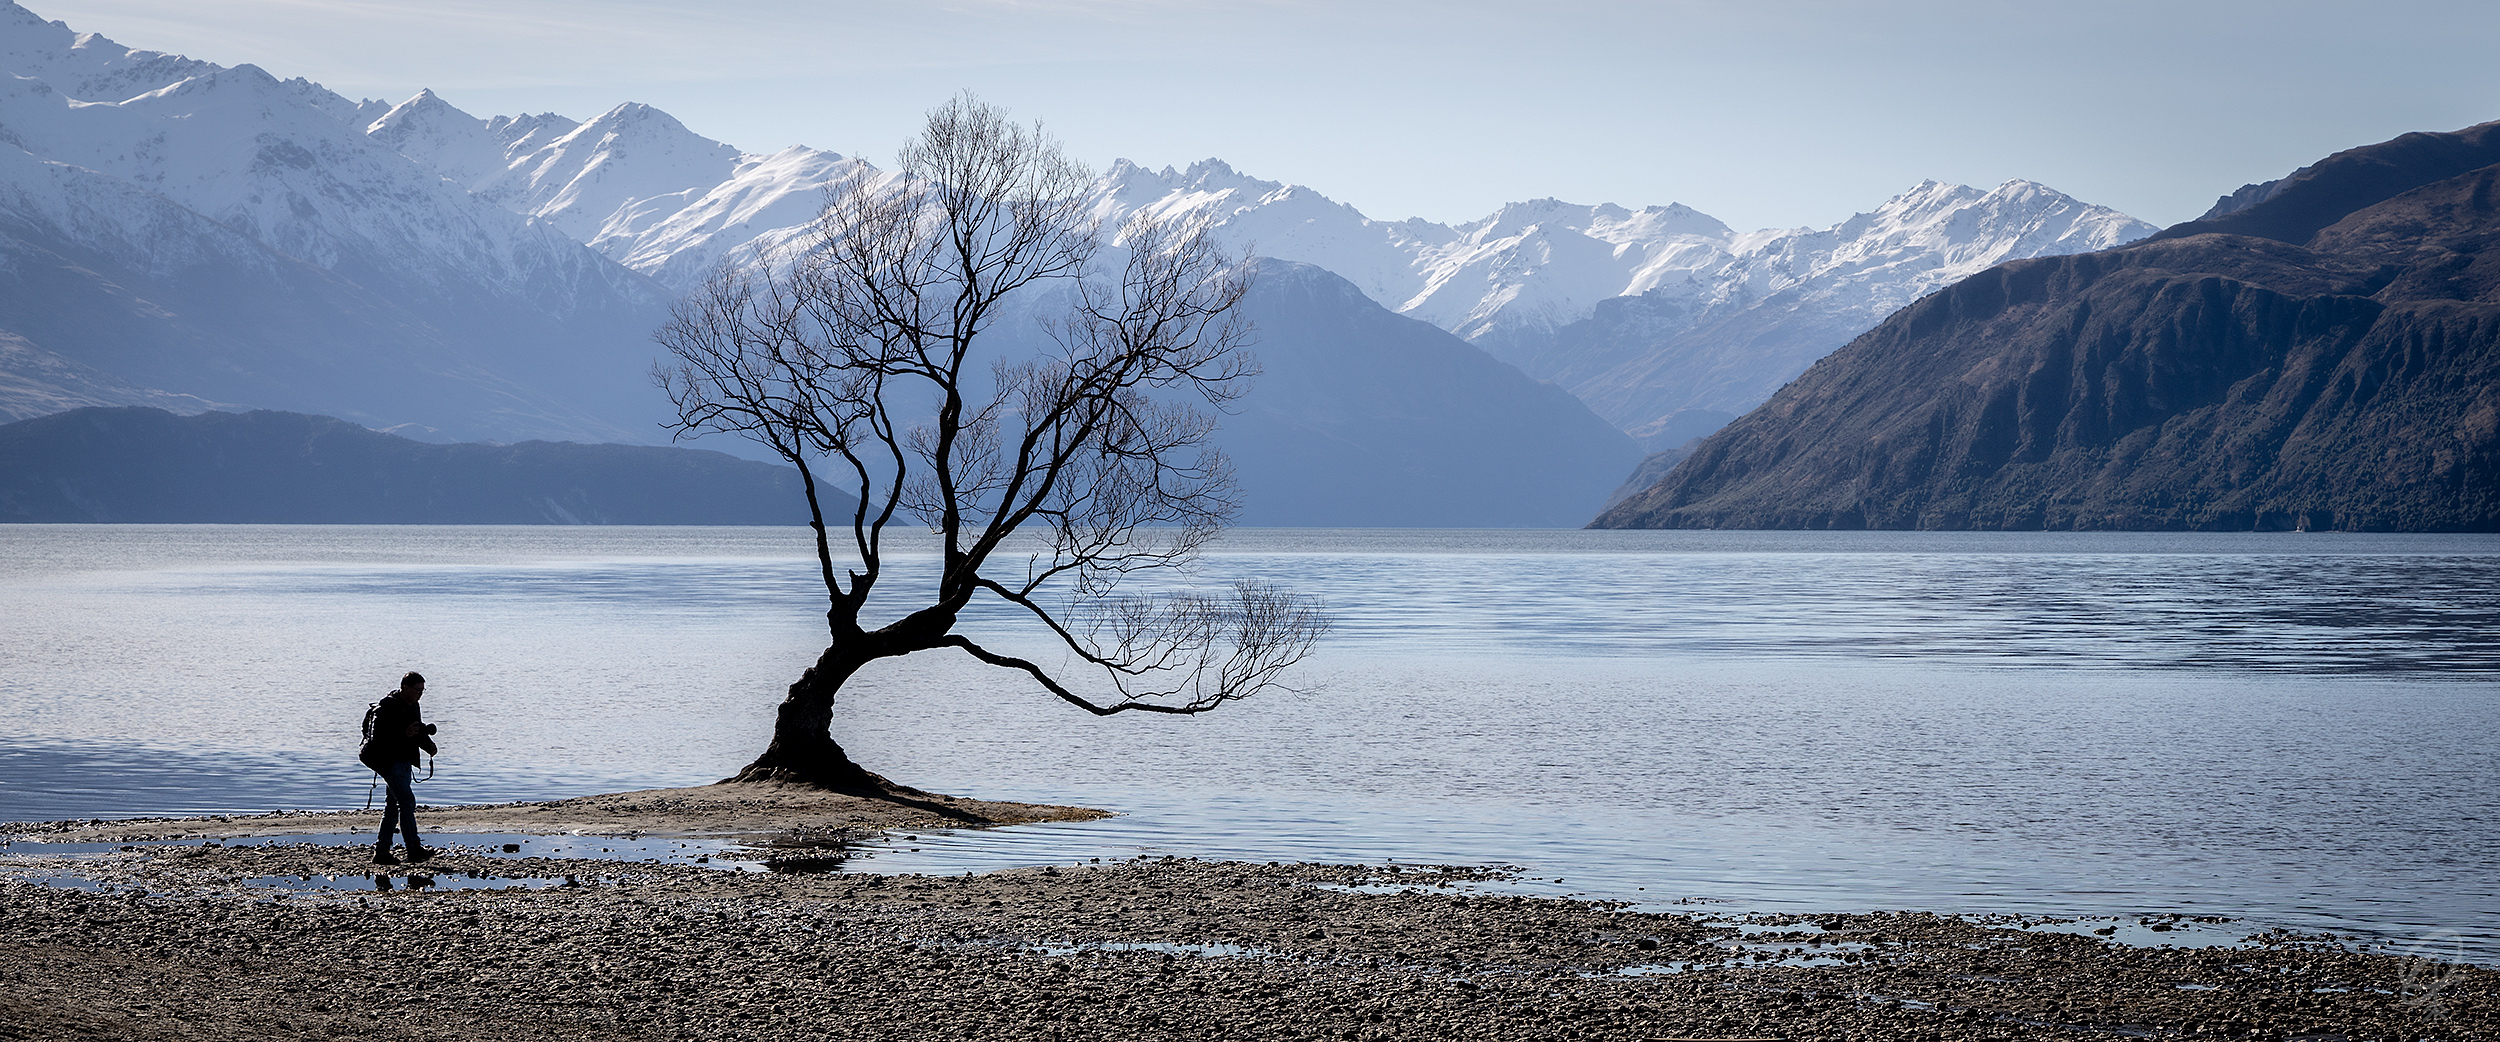 THE MOST FAMOUS thing to do in Wanaka